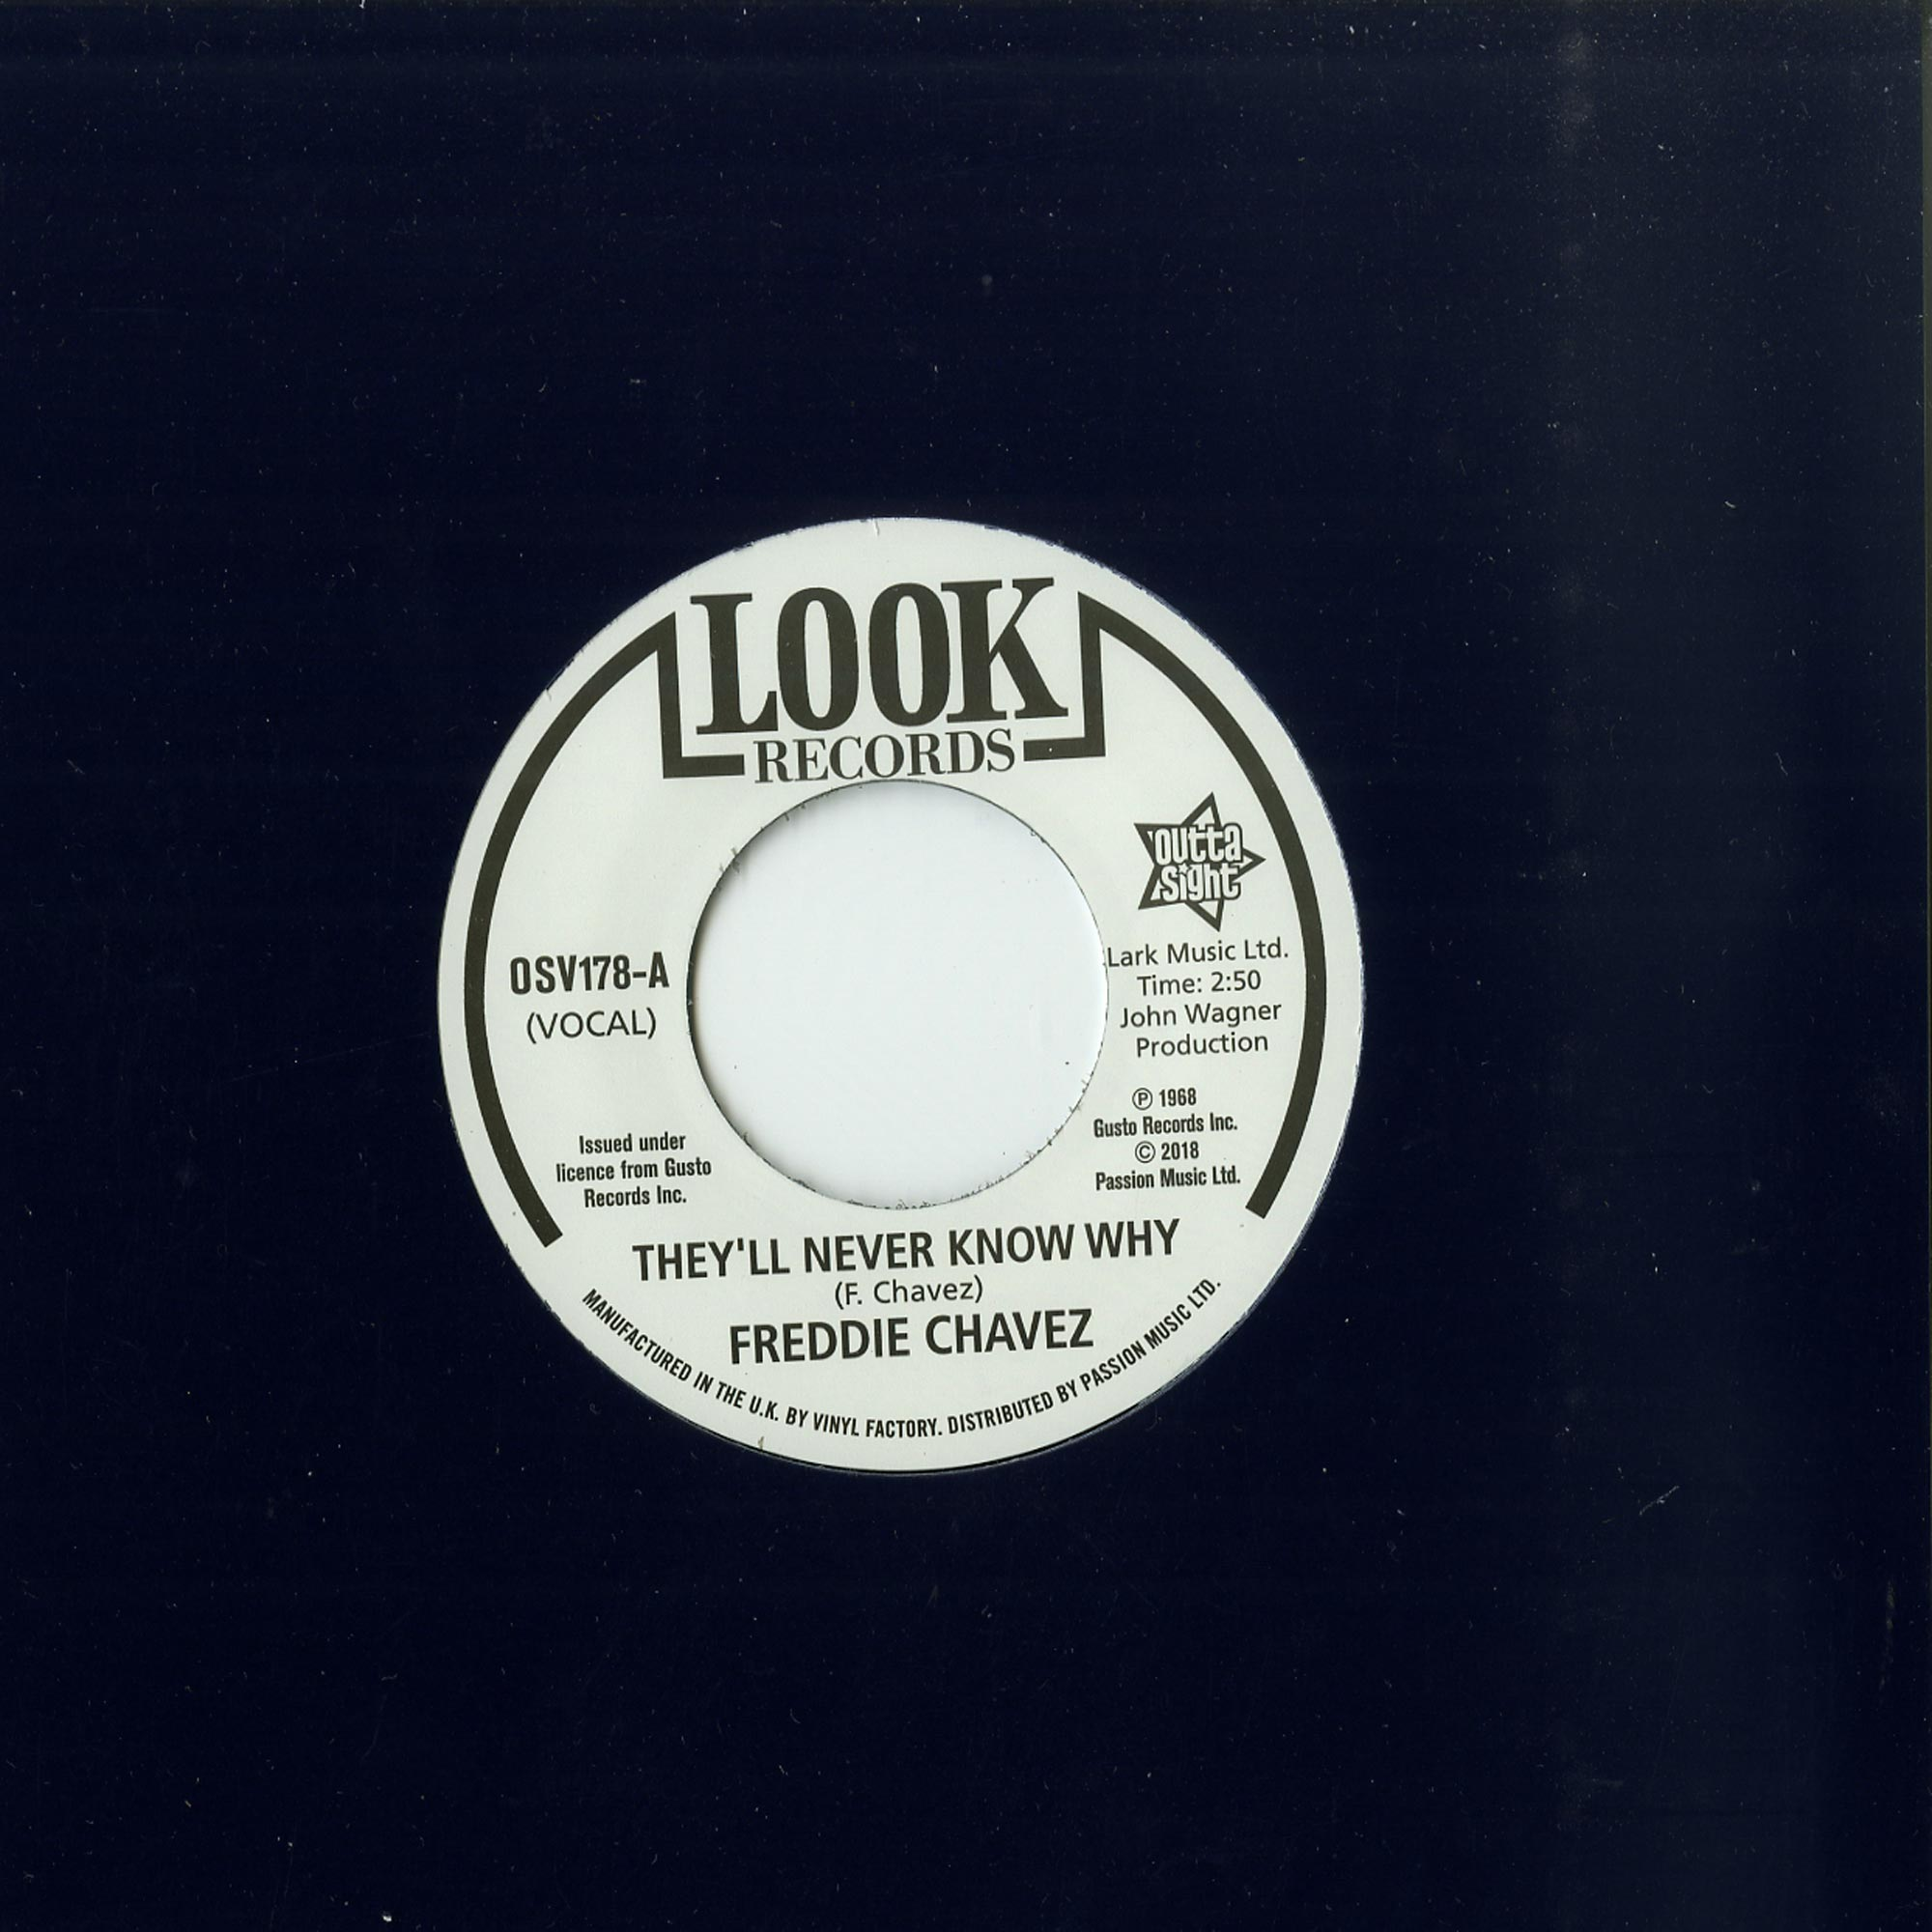 Freddie Chavez / Dave Newman - THEY LL NEVER KNOW WHY / MAKE UP YOUR MIND